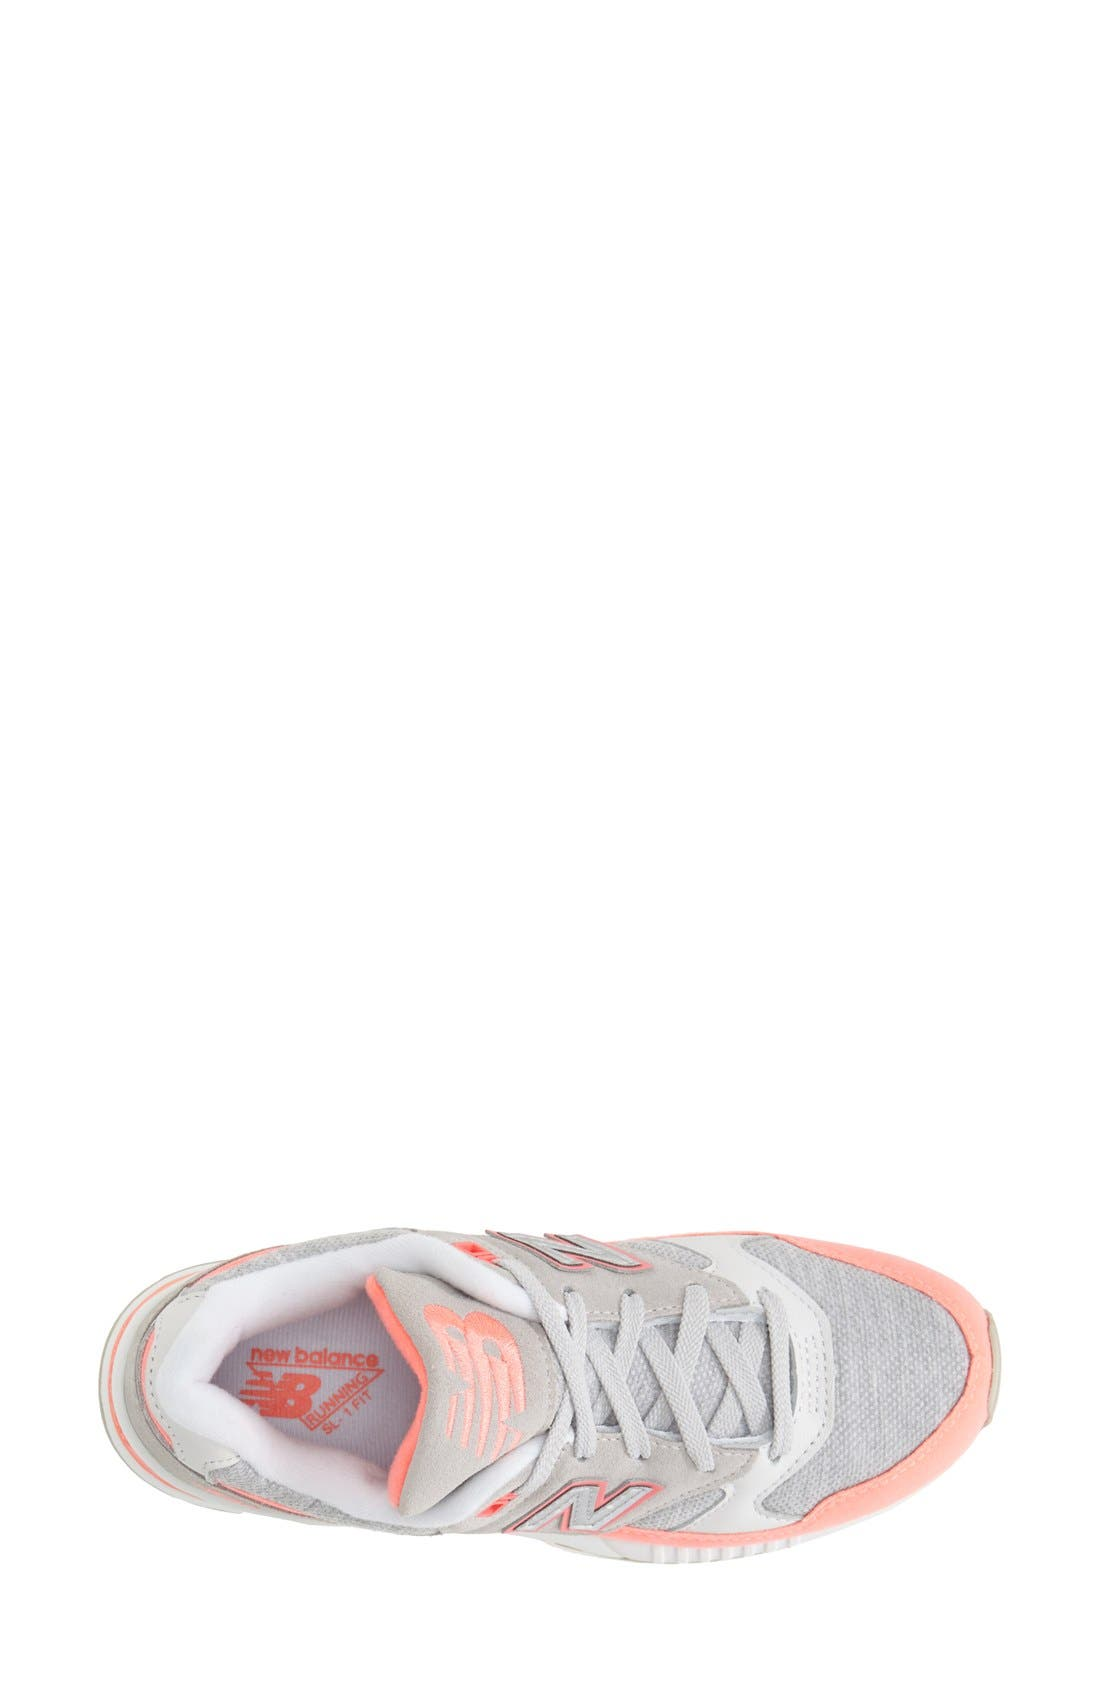 '530' Sneaker,                             Alternate thumbnail 16, color,